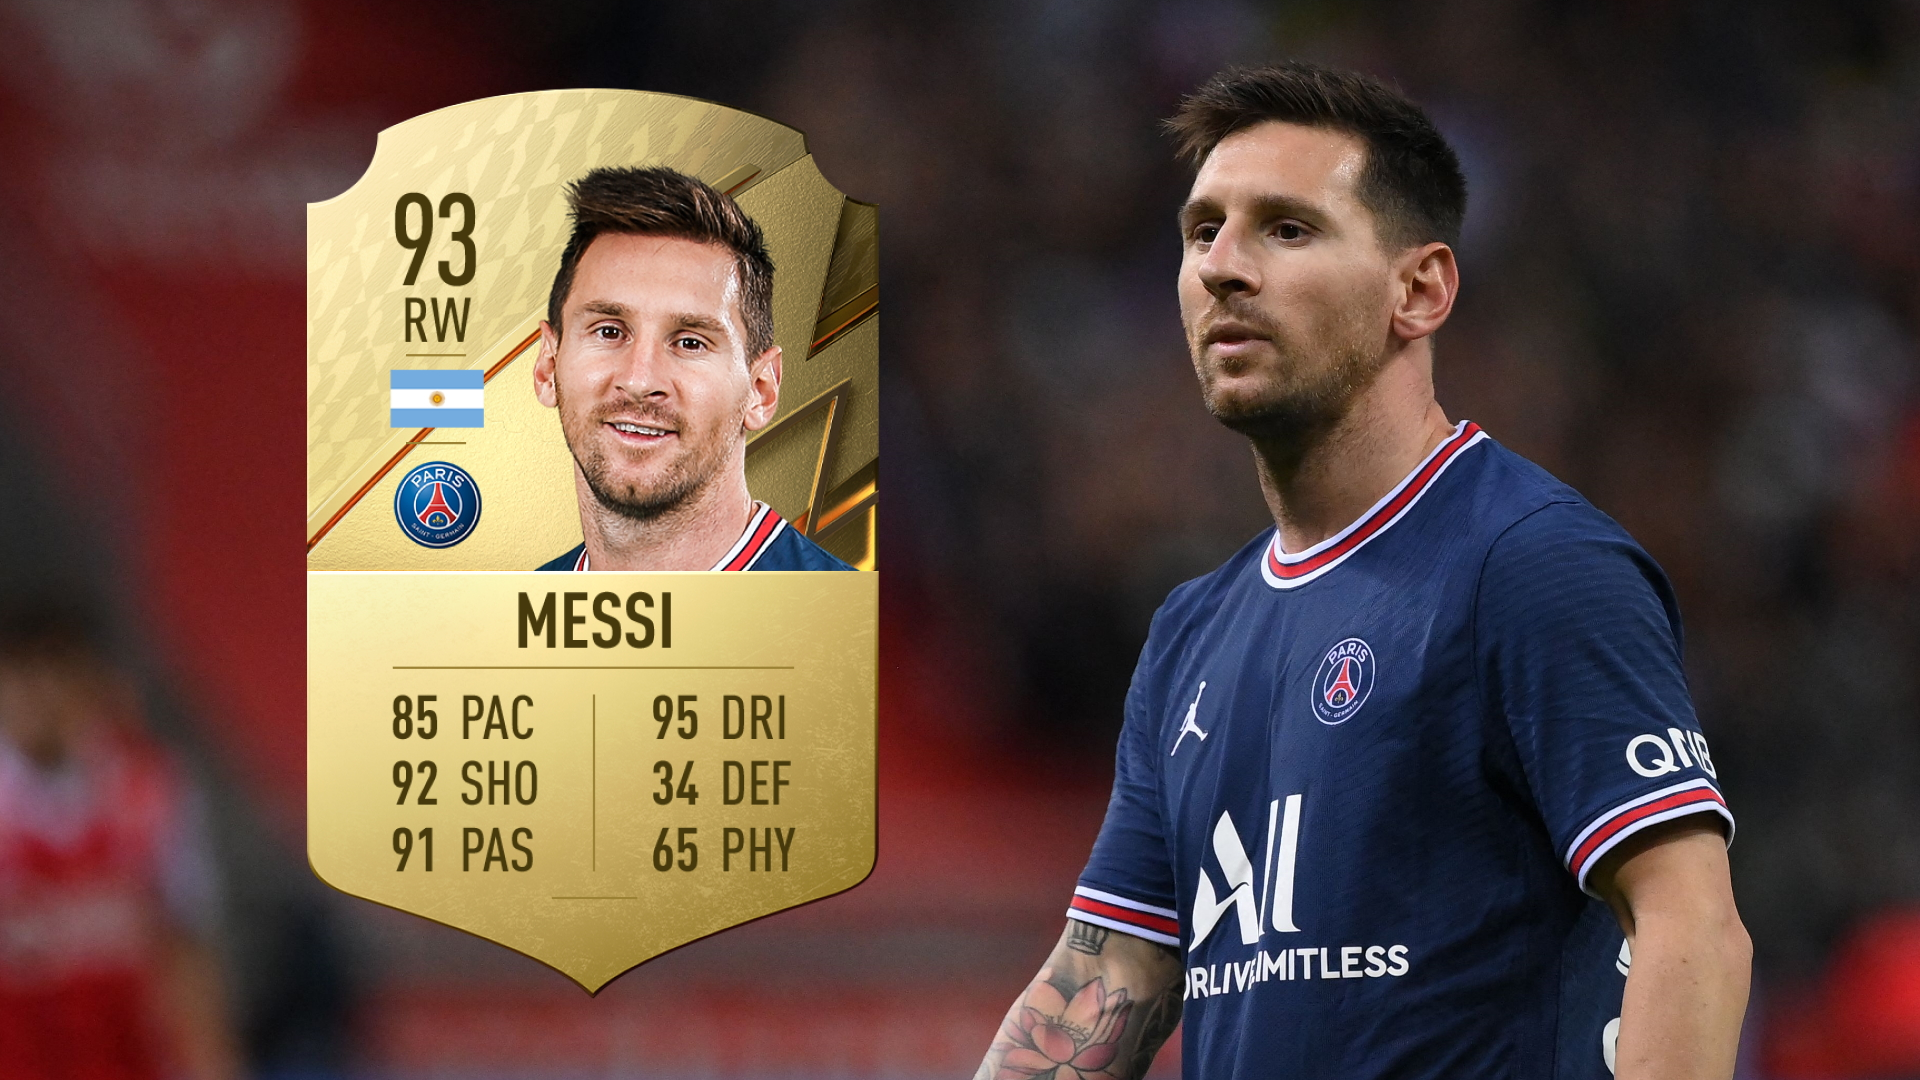 FIFA 22: Messi confirmed as highest rated player as PSG star edges Ronaldo to top spot